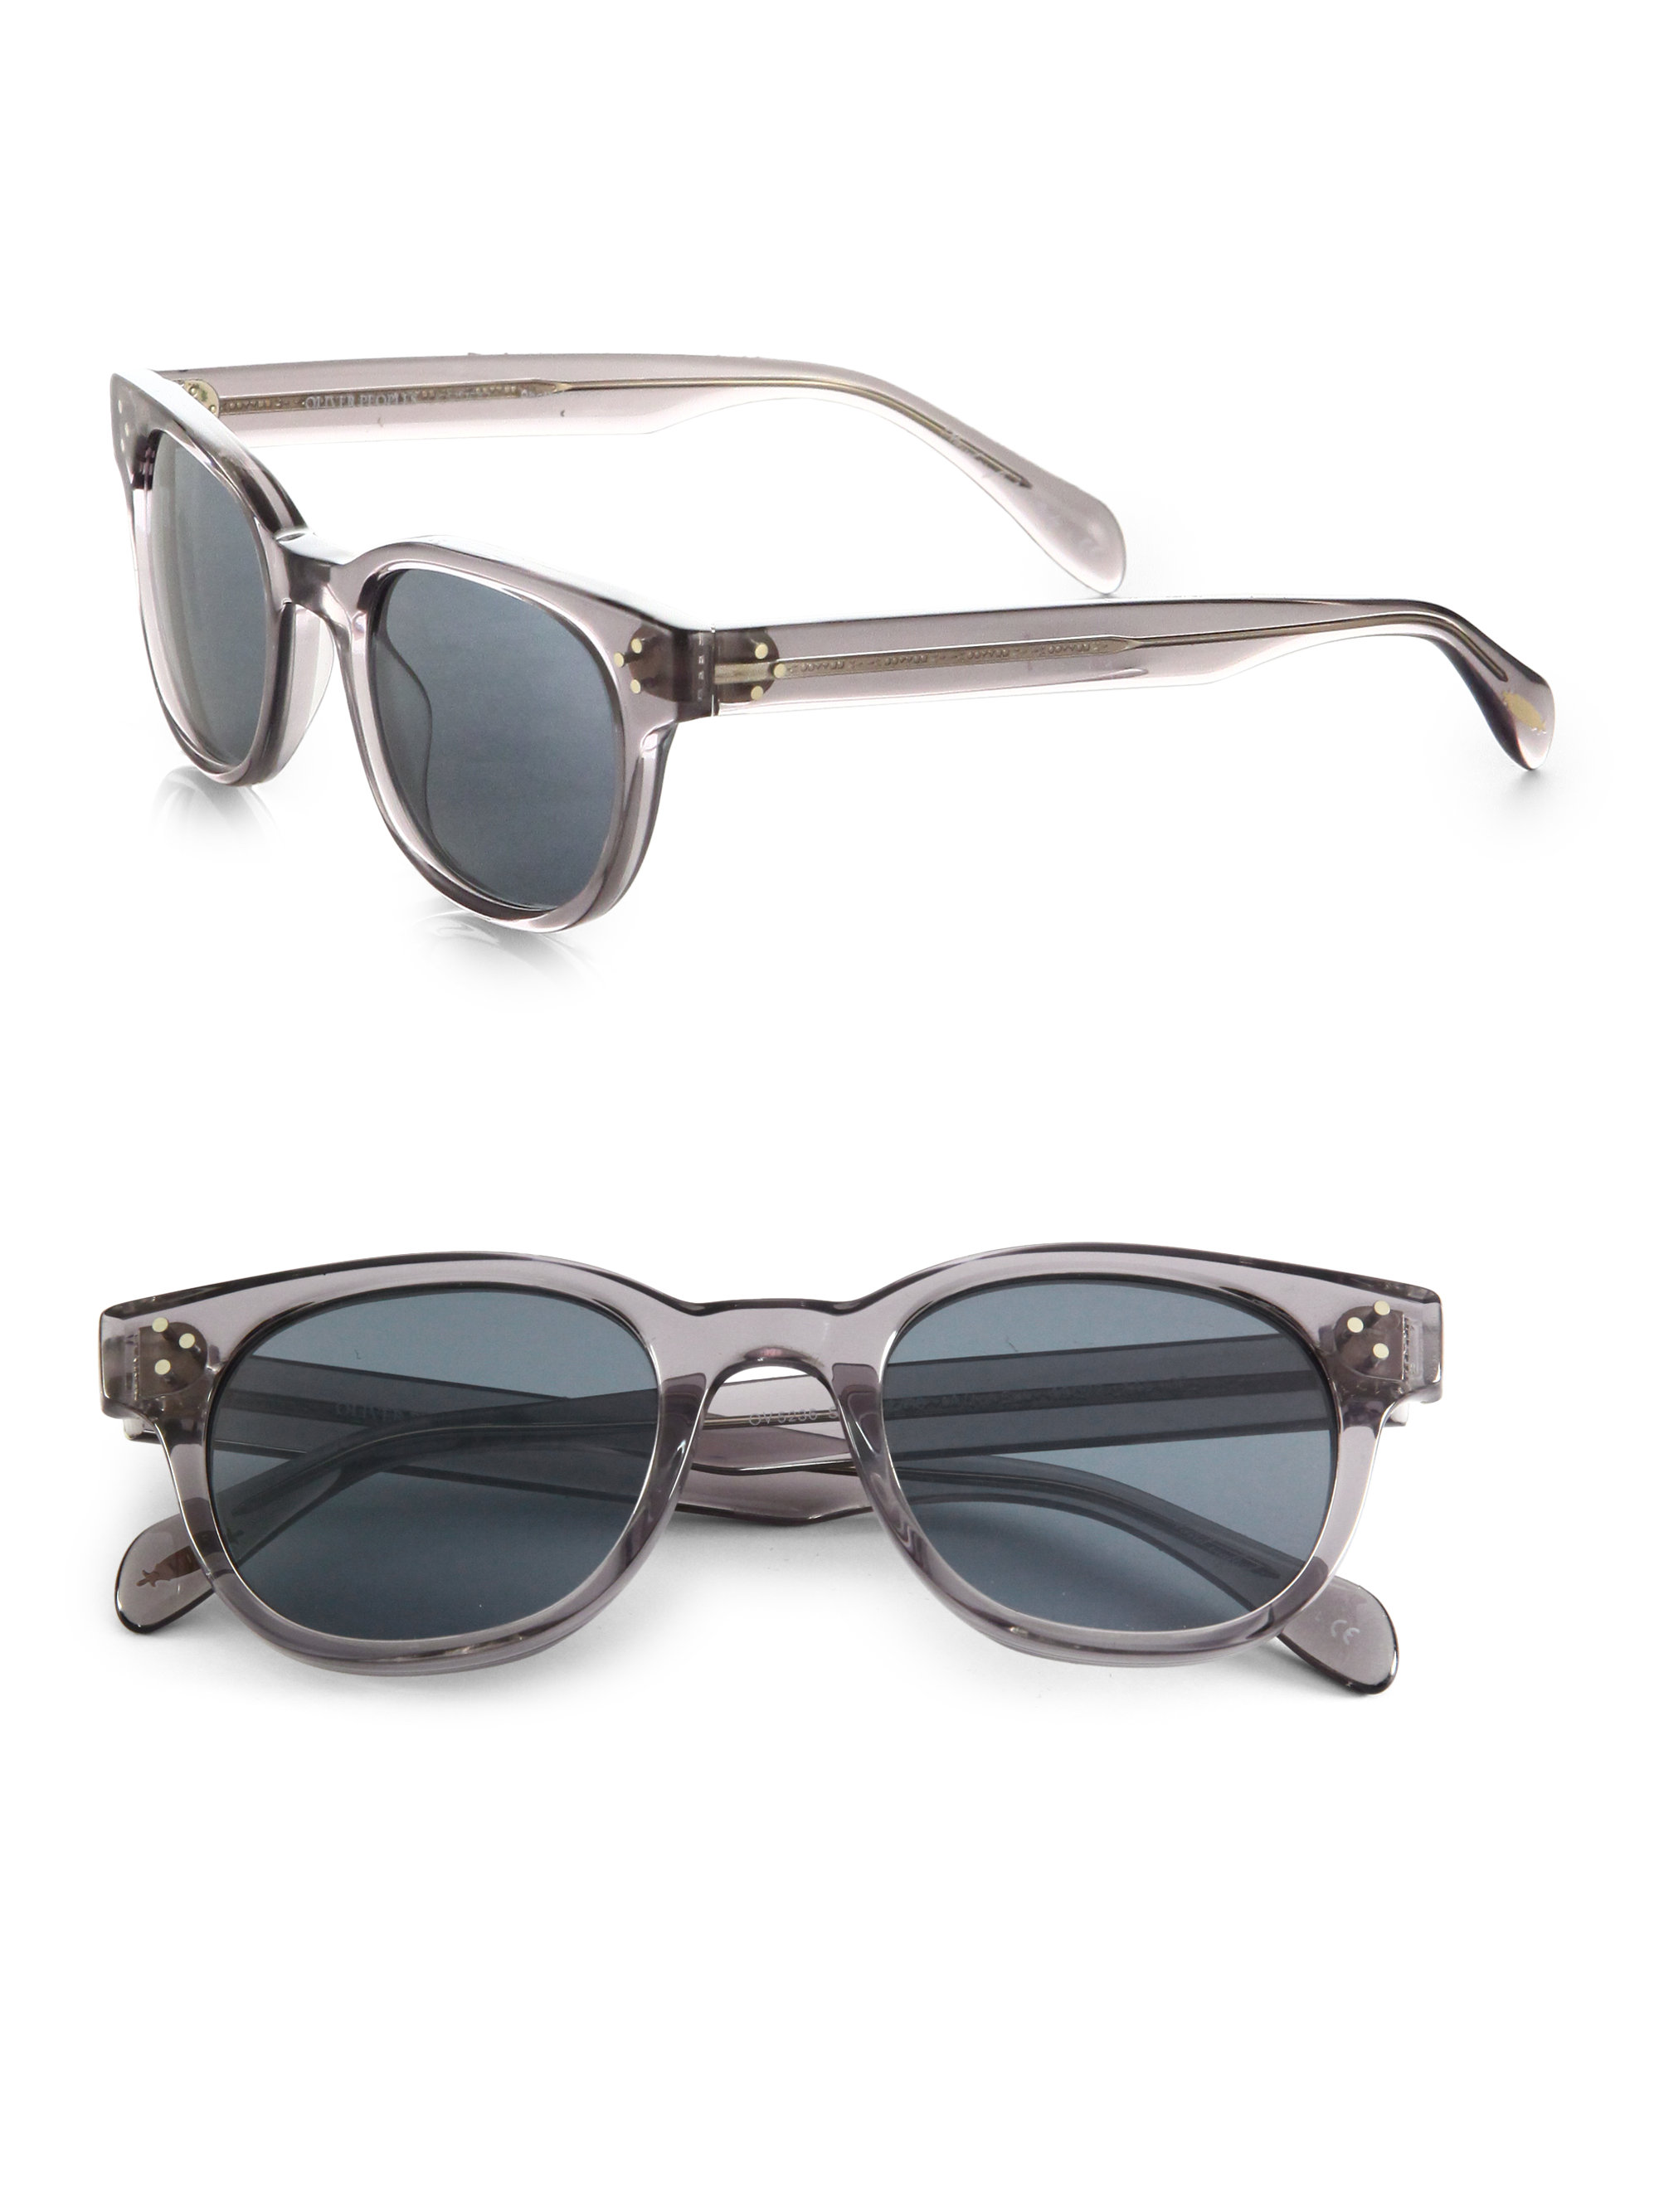 11634195b3 Lyst - Oliver Peoples Afton Sun Acetate Round Sunglasses in Gray